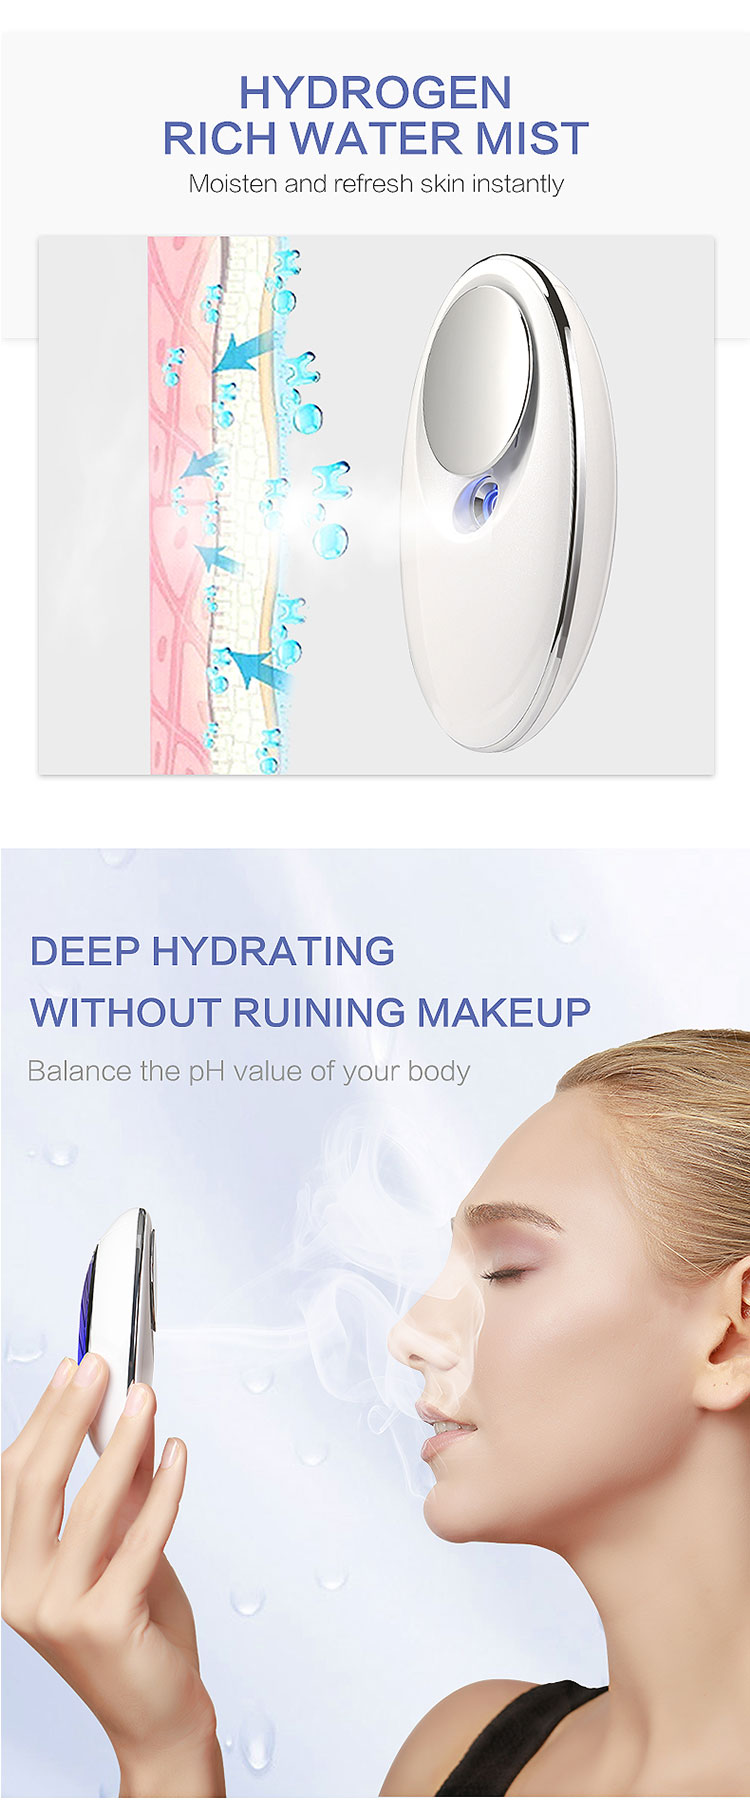 Cool mist or warm for congestion is air humidifier good health what can a help with thermal water spray face